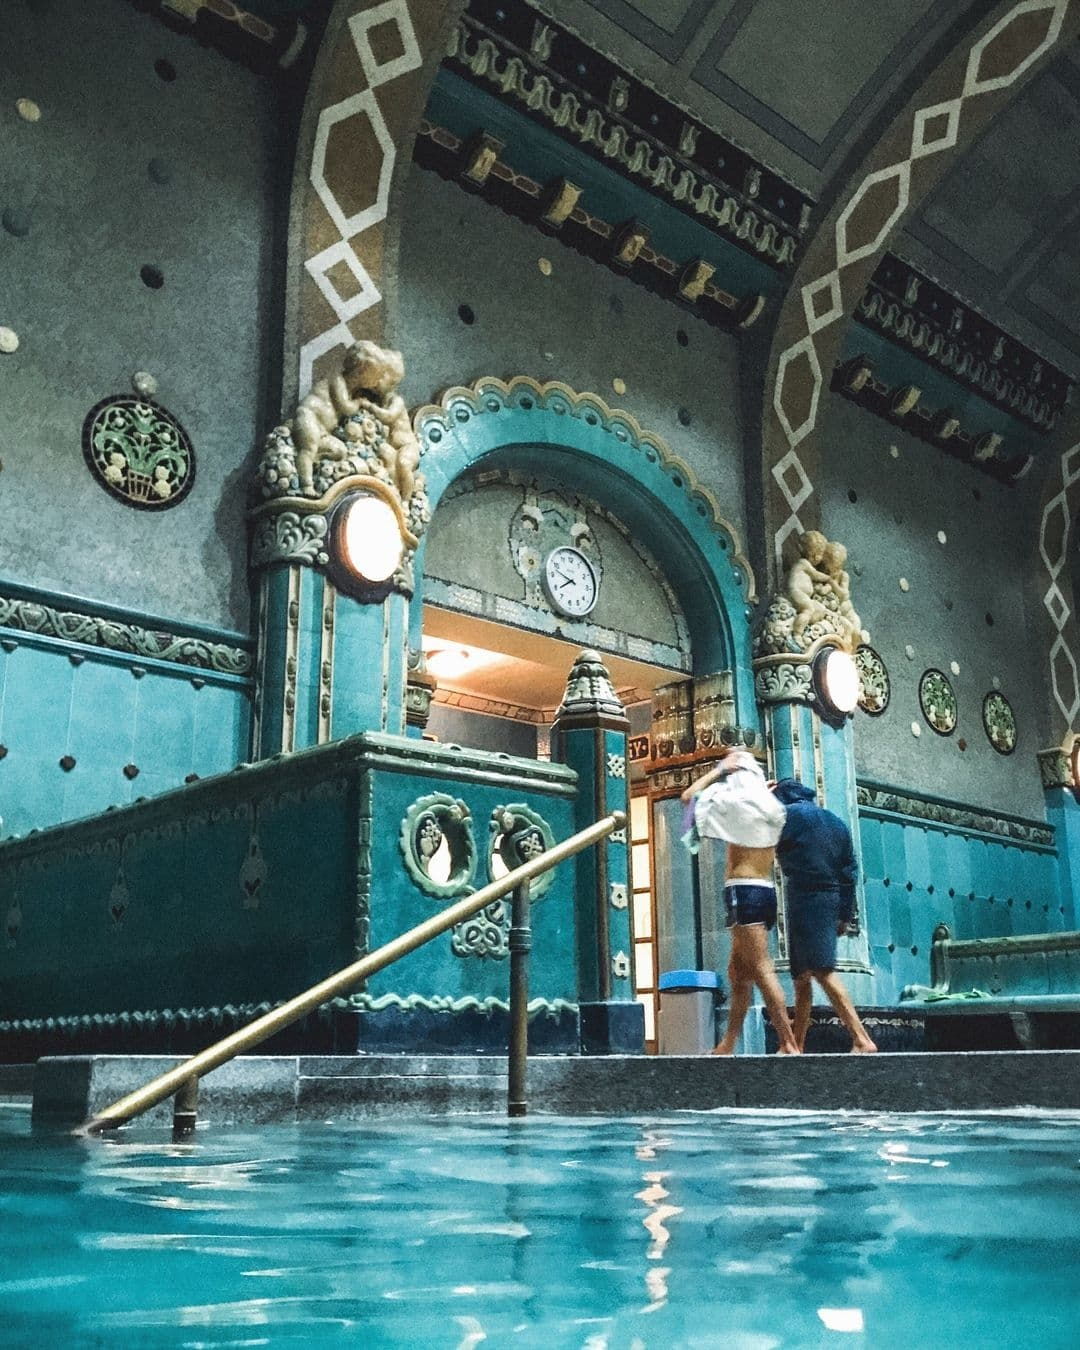 Turquoise, ornate interior of one of Budapest's many thermal spas.